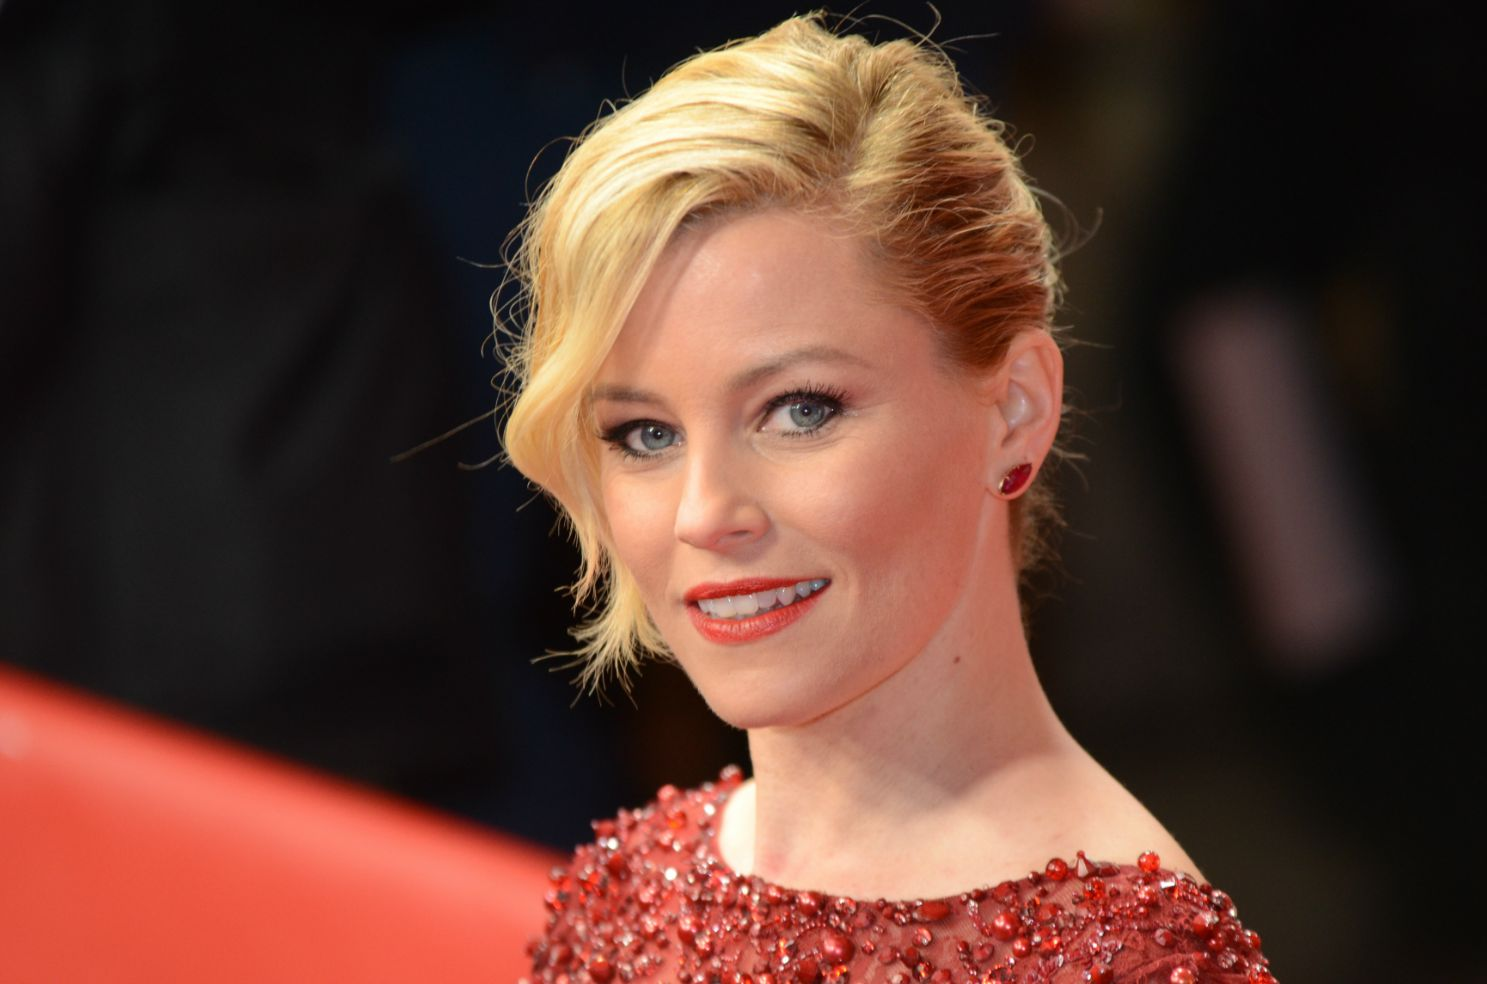 Elizabeth Banks departs Pitch Perfect 3